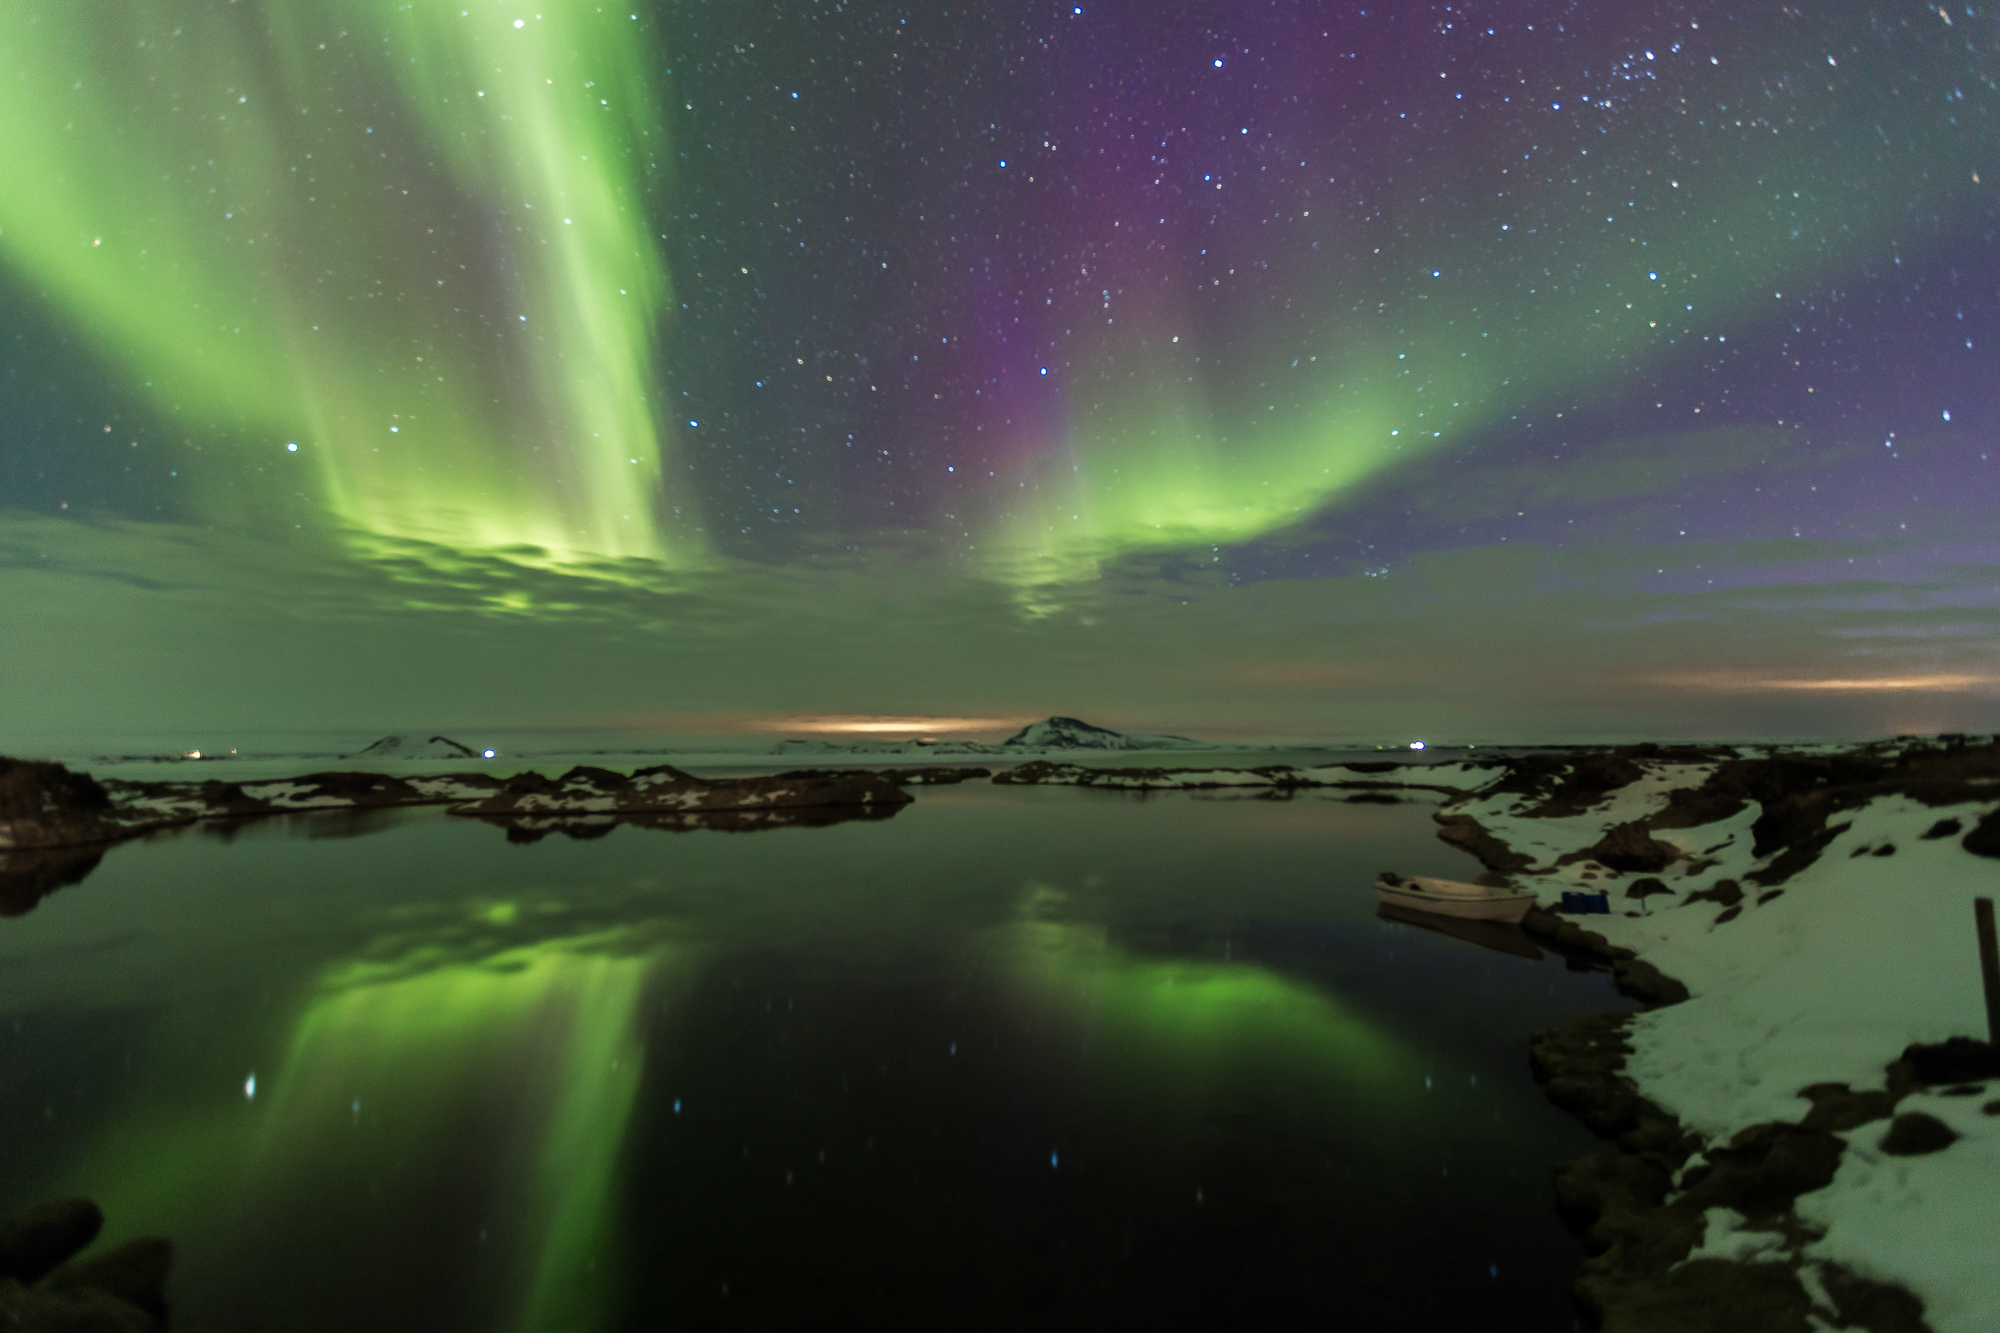 The northern lights shining over the peaceful pond in Myvatn